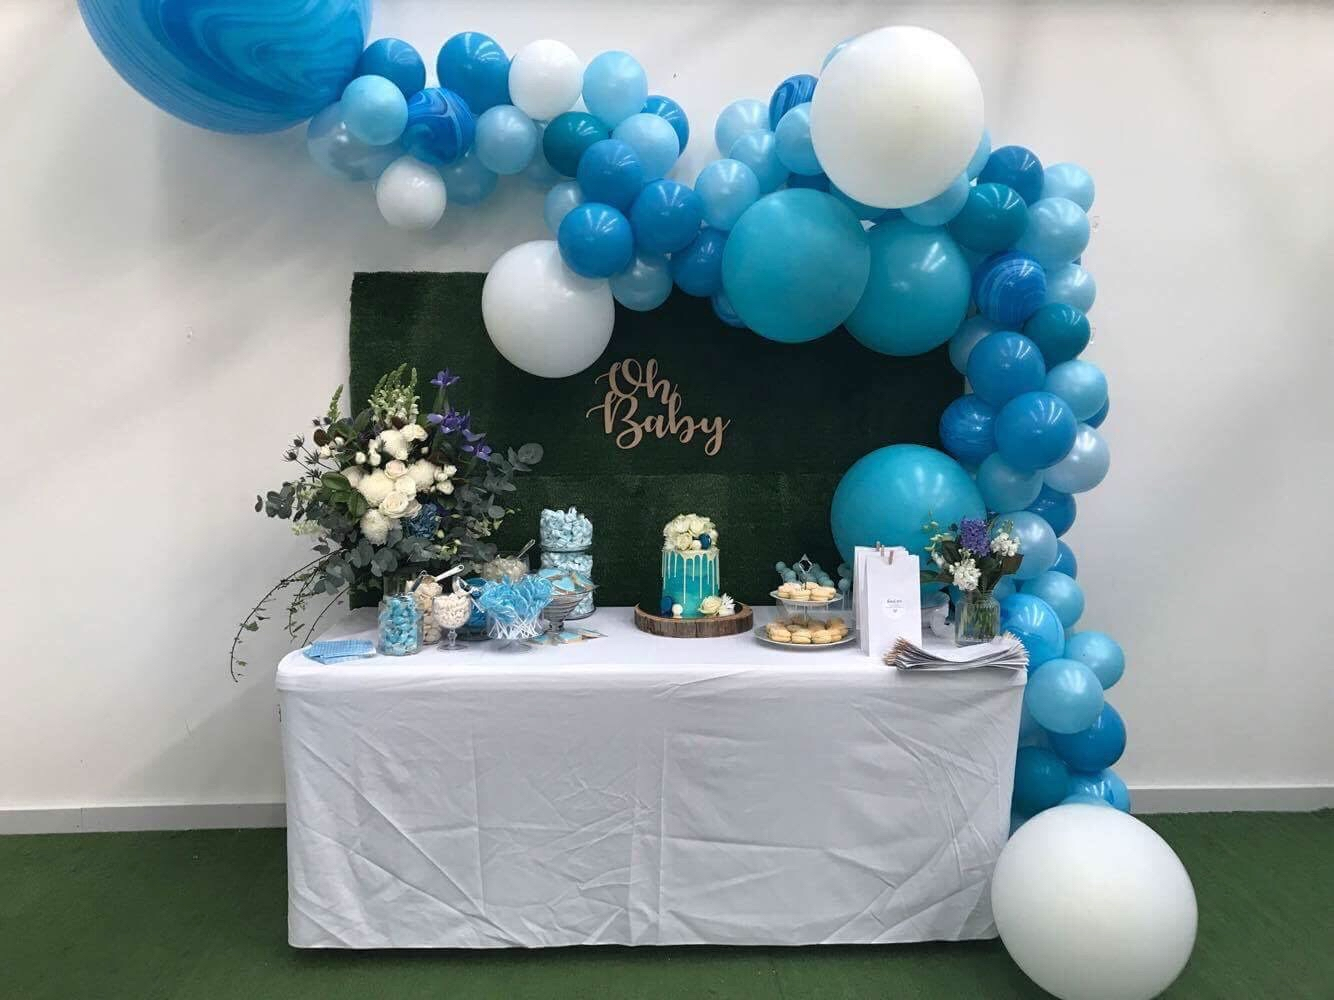 Samantha's Baby Shower - REQUEST A QUOTE